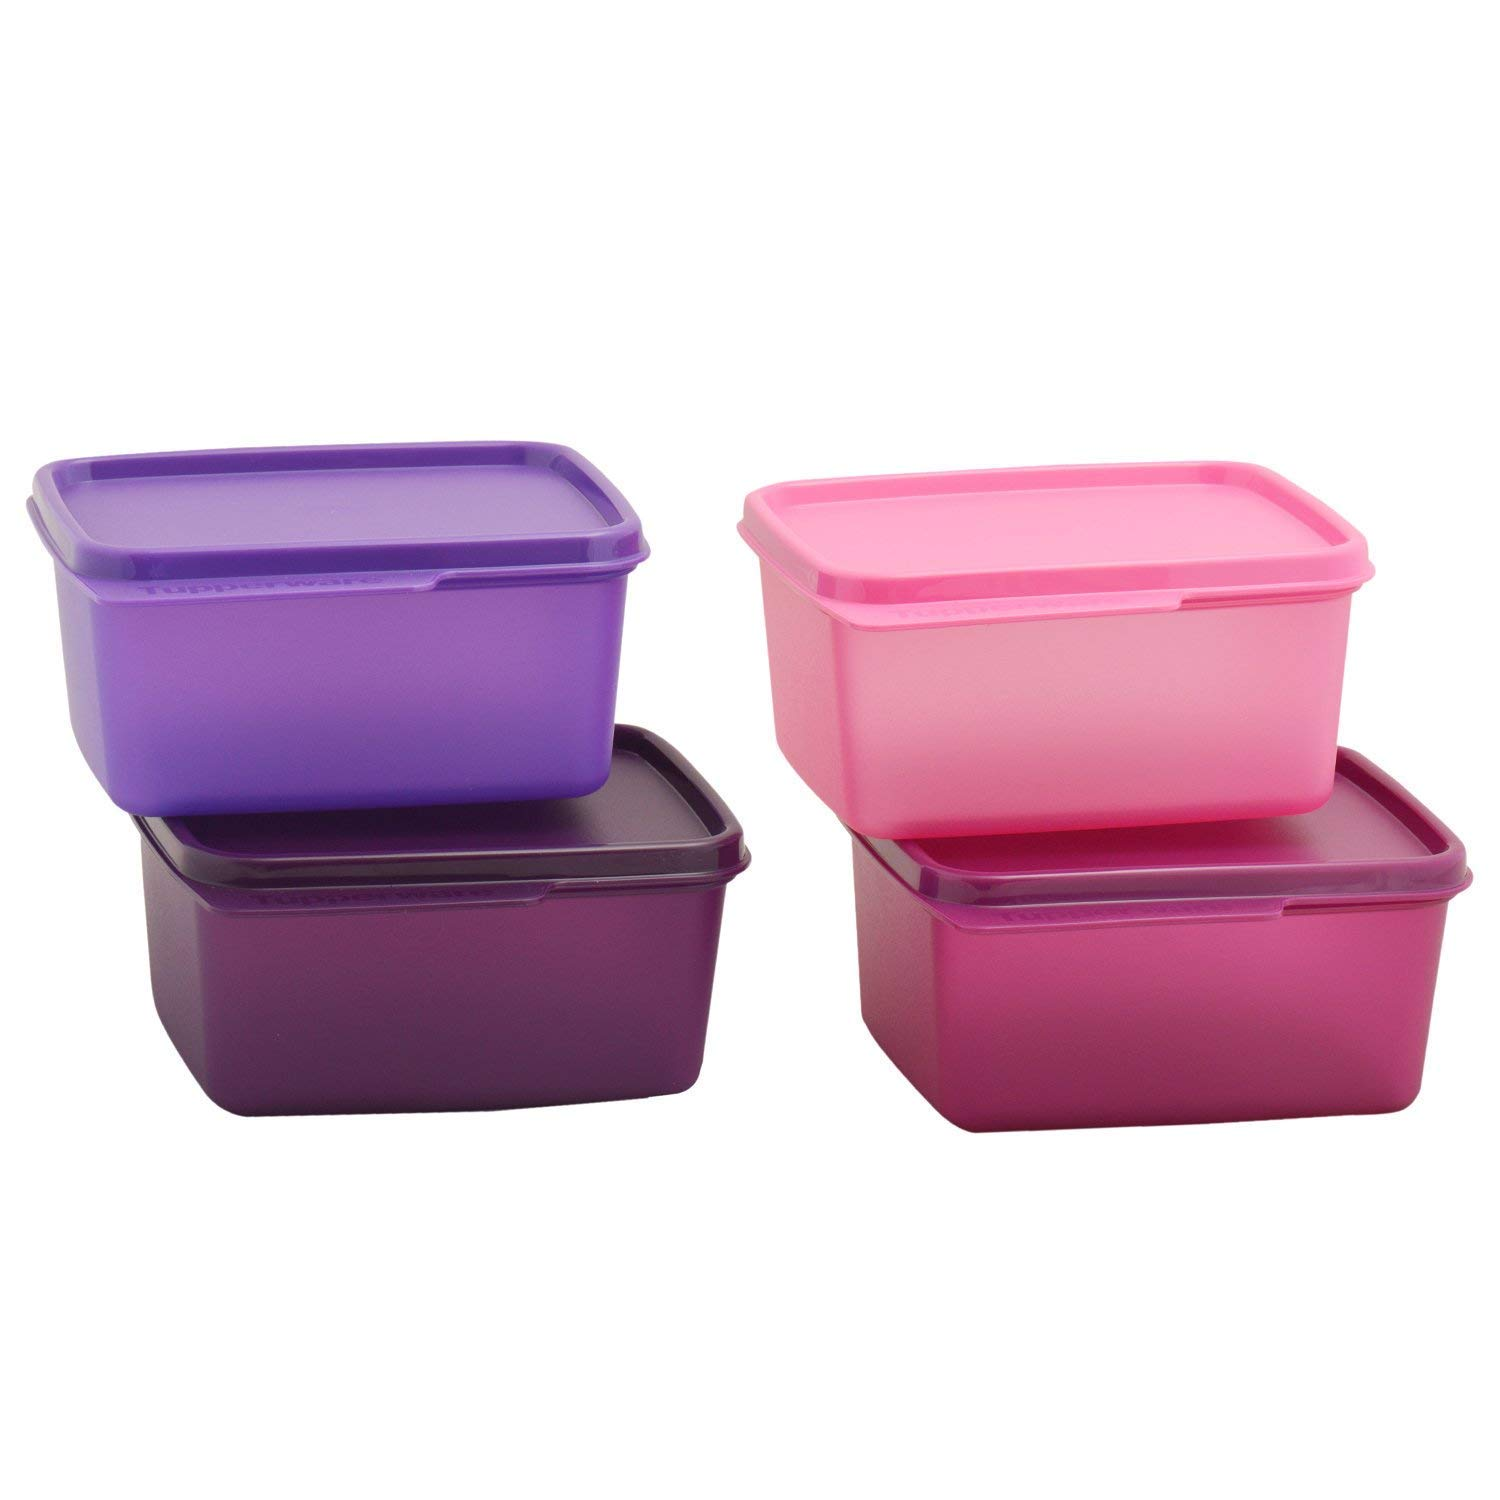 Tupperware Keep Tab Plastic Container Set, 500ml, Set of 4,